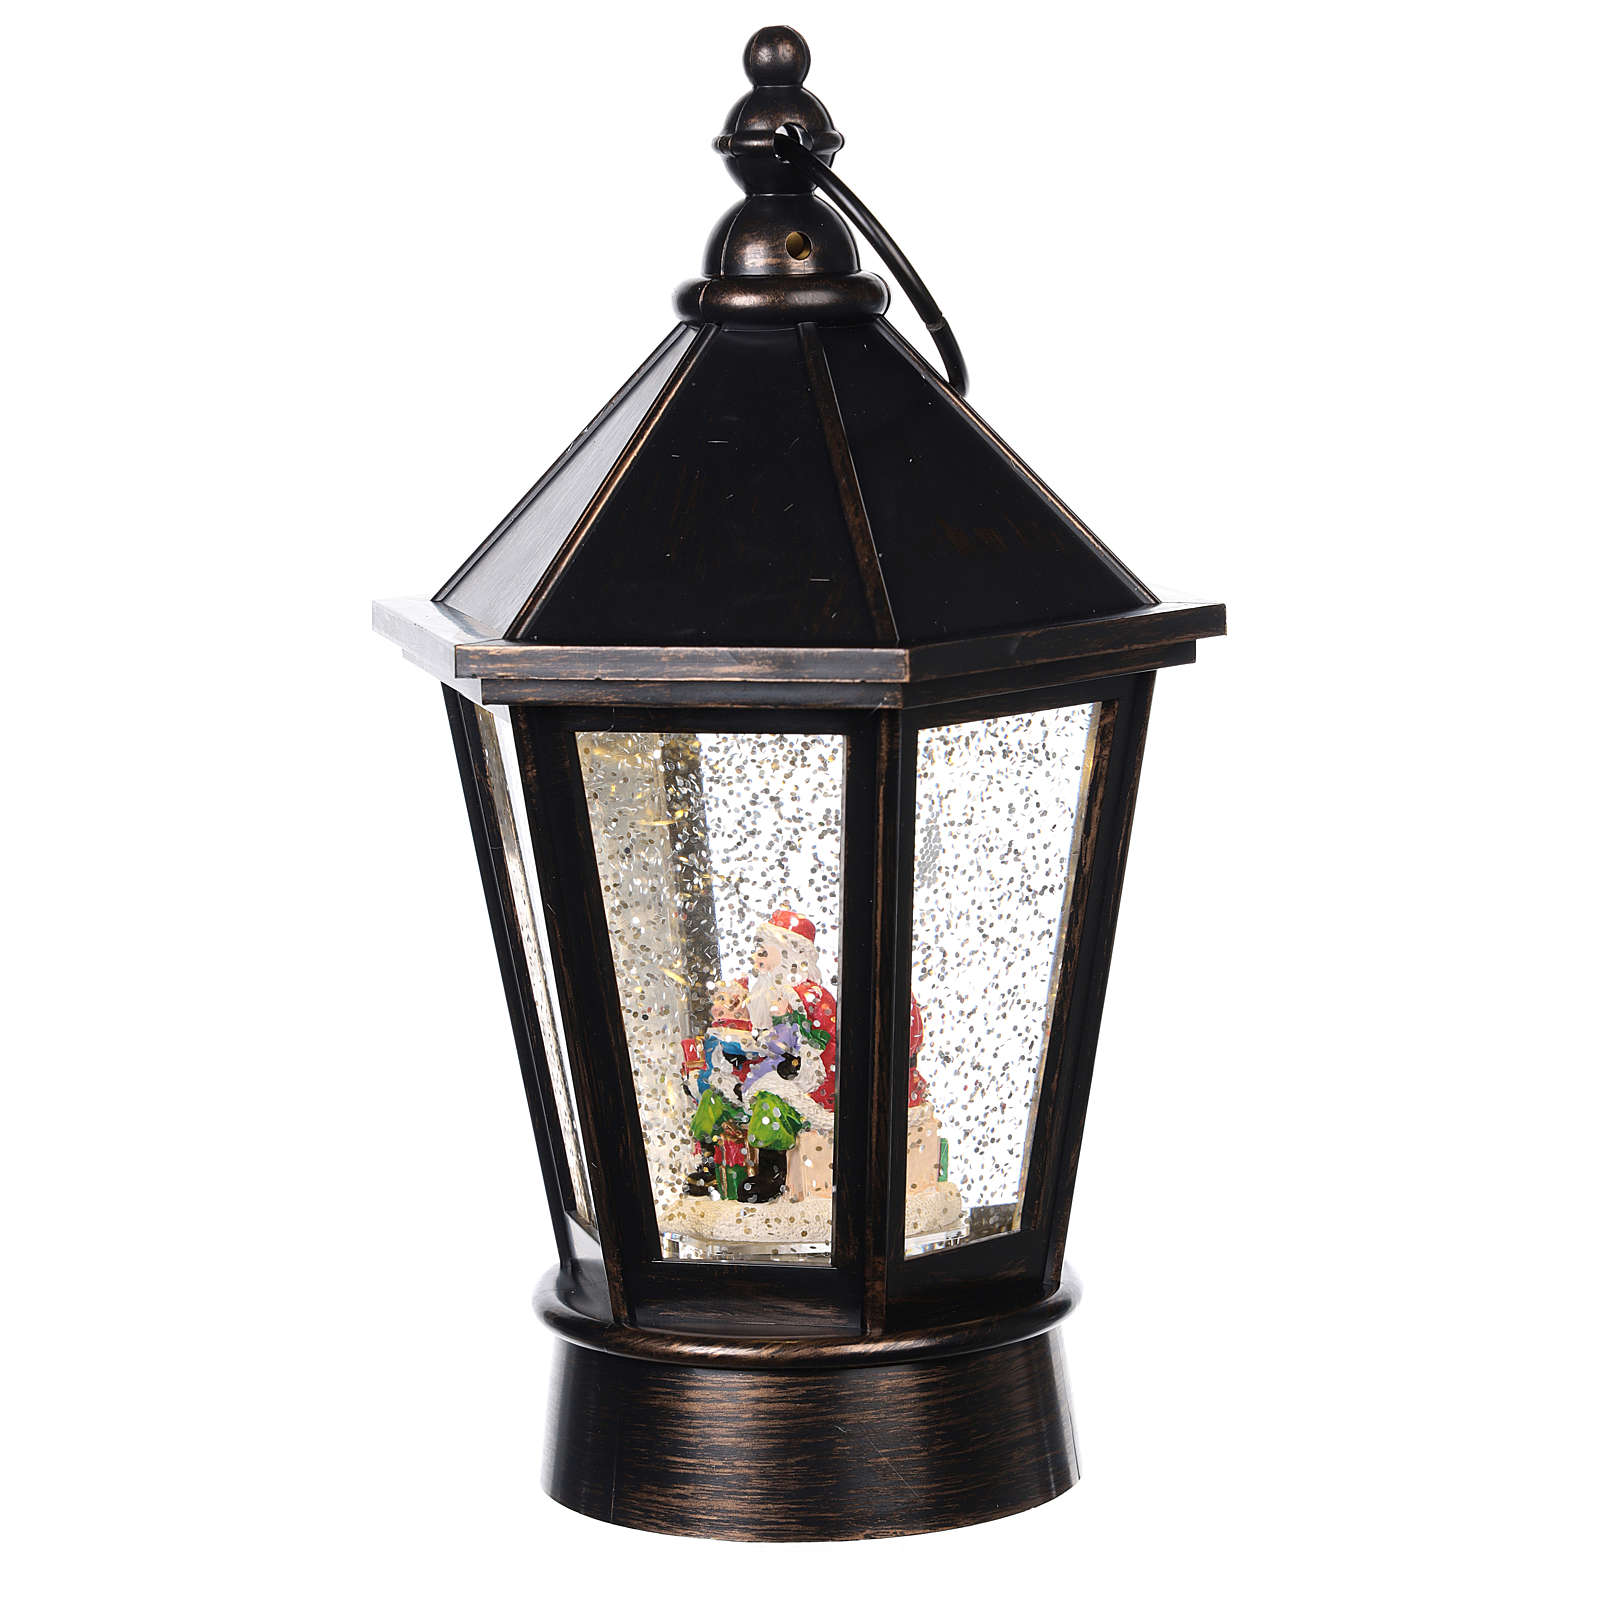 Glass ball in the shape of a lantern with Santa Claus inside 25x10 cm 3